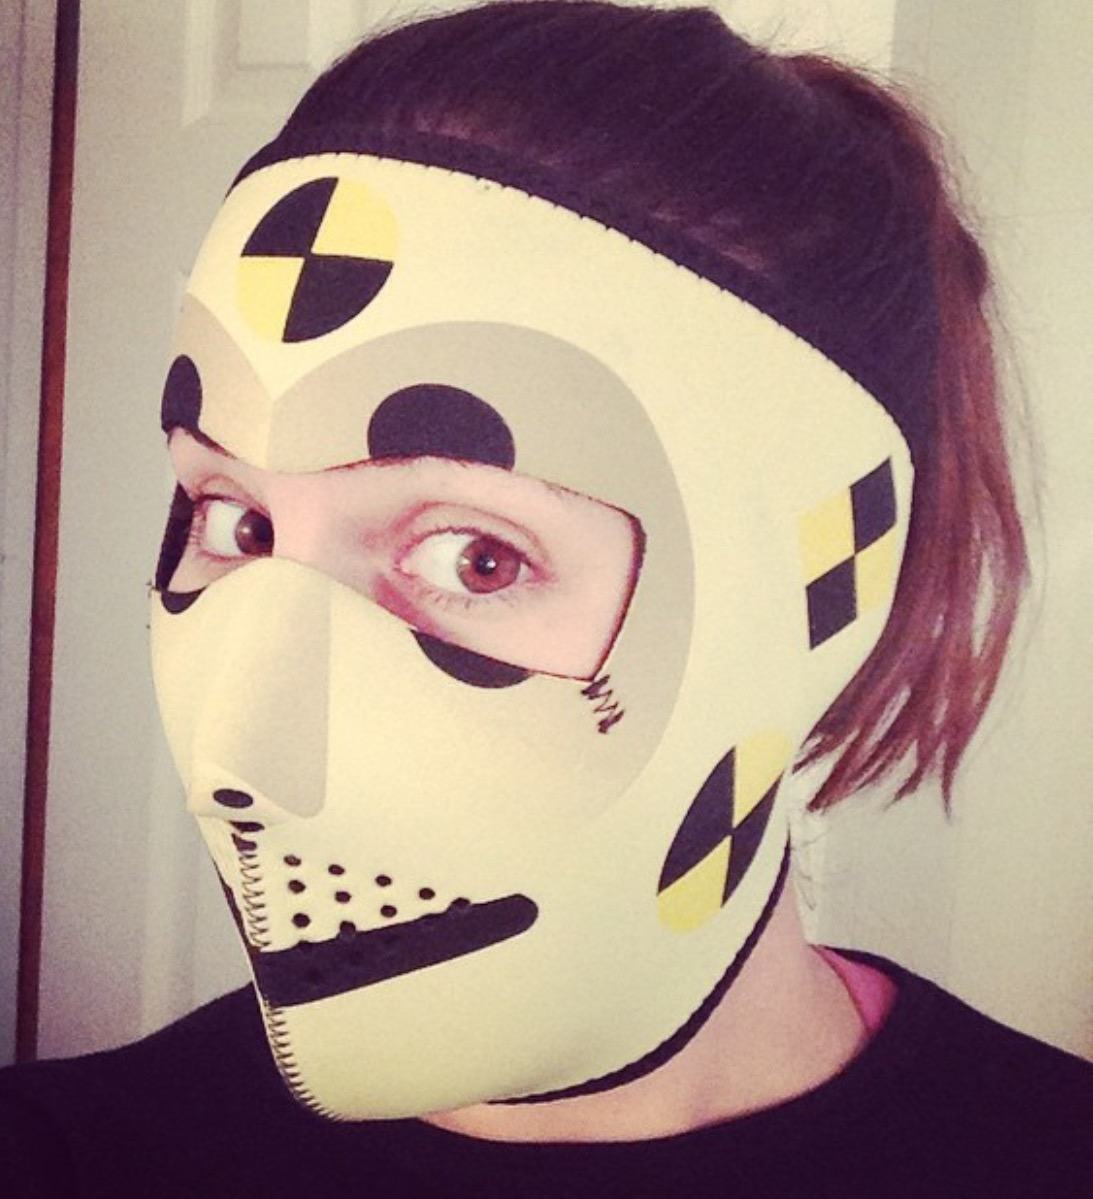 crash-dummy-neoprene-face-mask.jpg